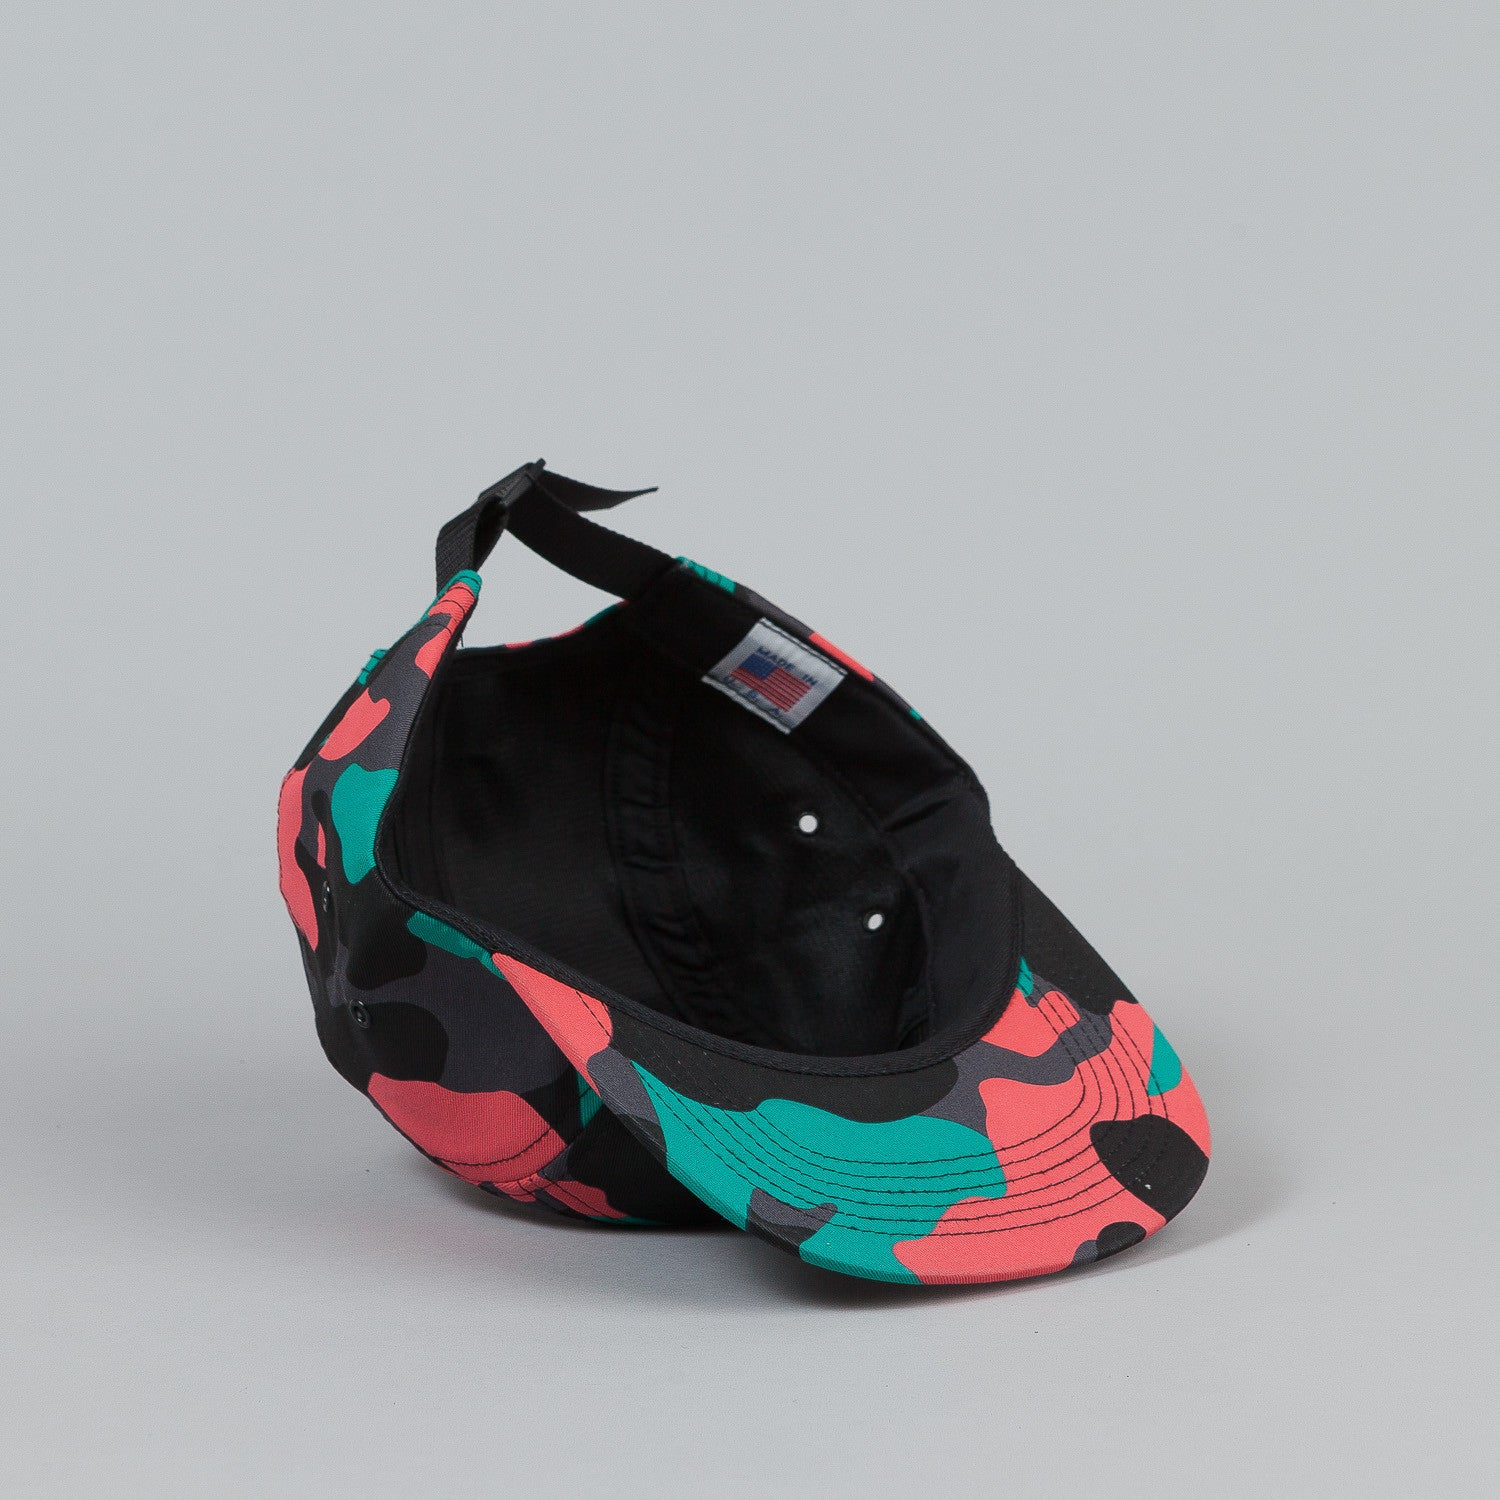 Indcsn Team 5 Panel Cap - All Over Camo